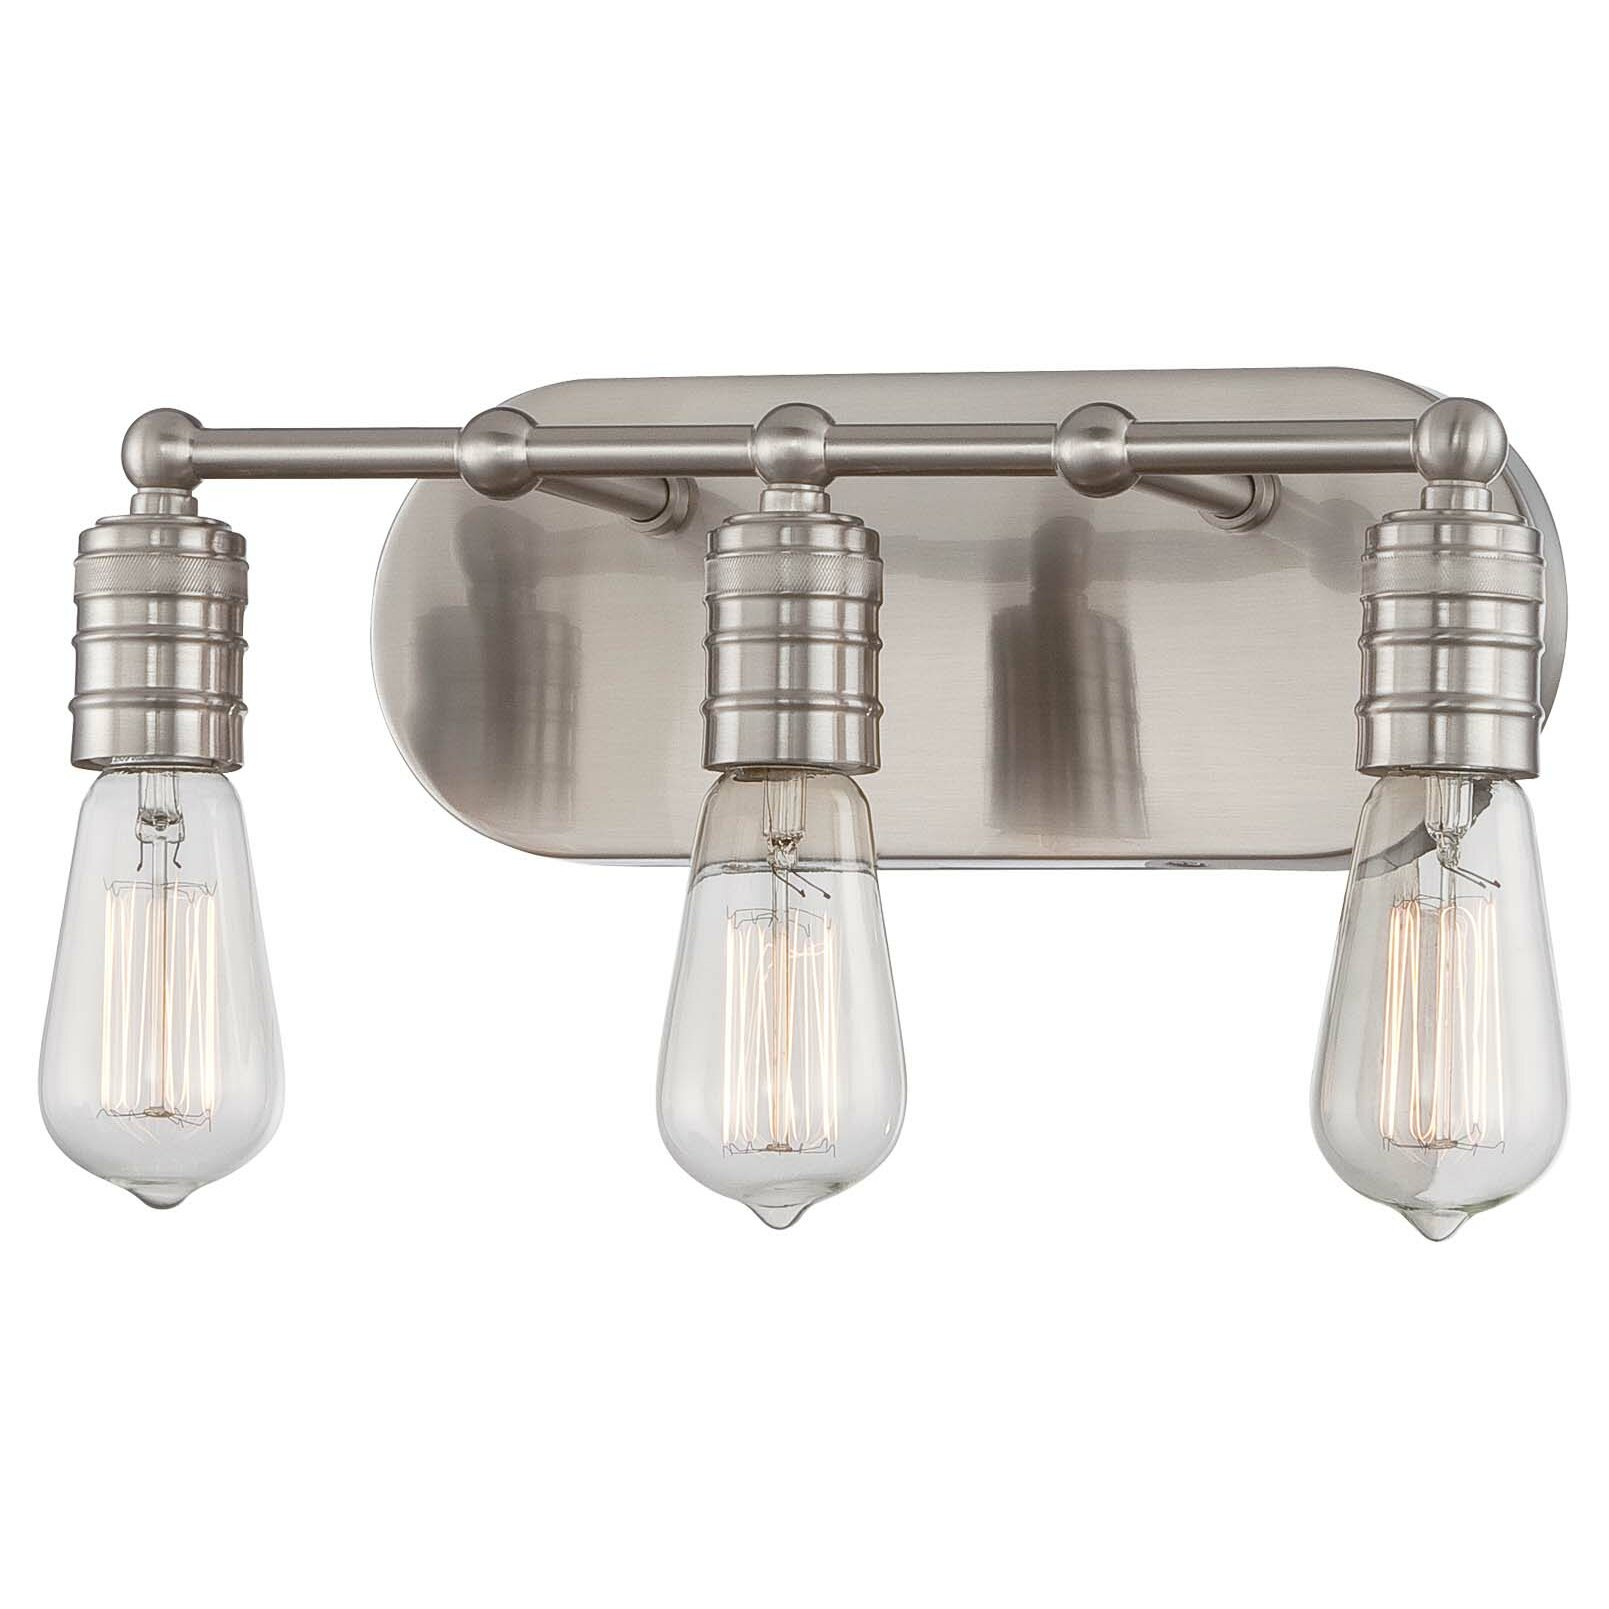 Minka Lavery Downtown Edison 3 Light Vanity Light Reviews Wayfair